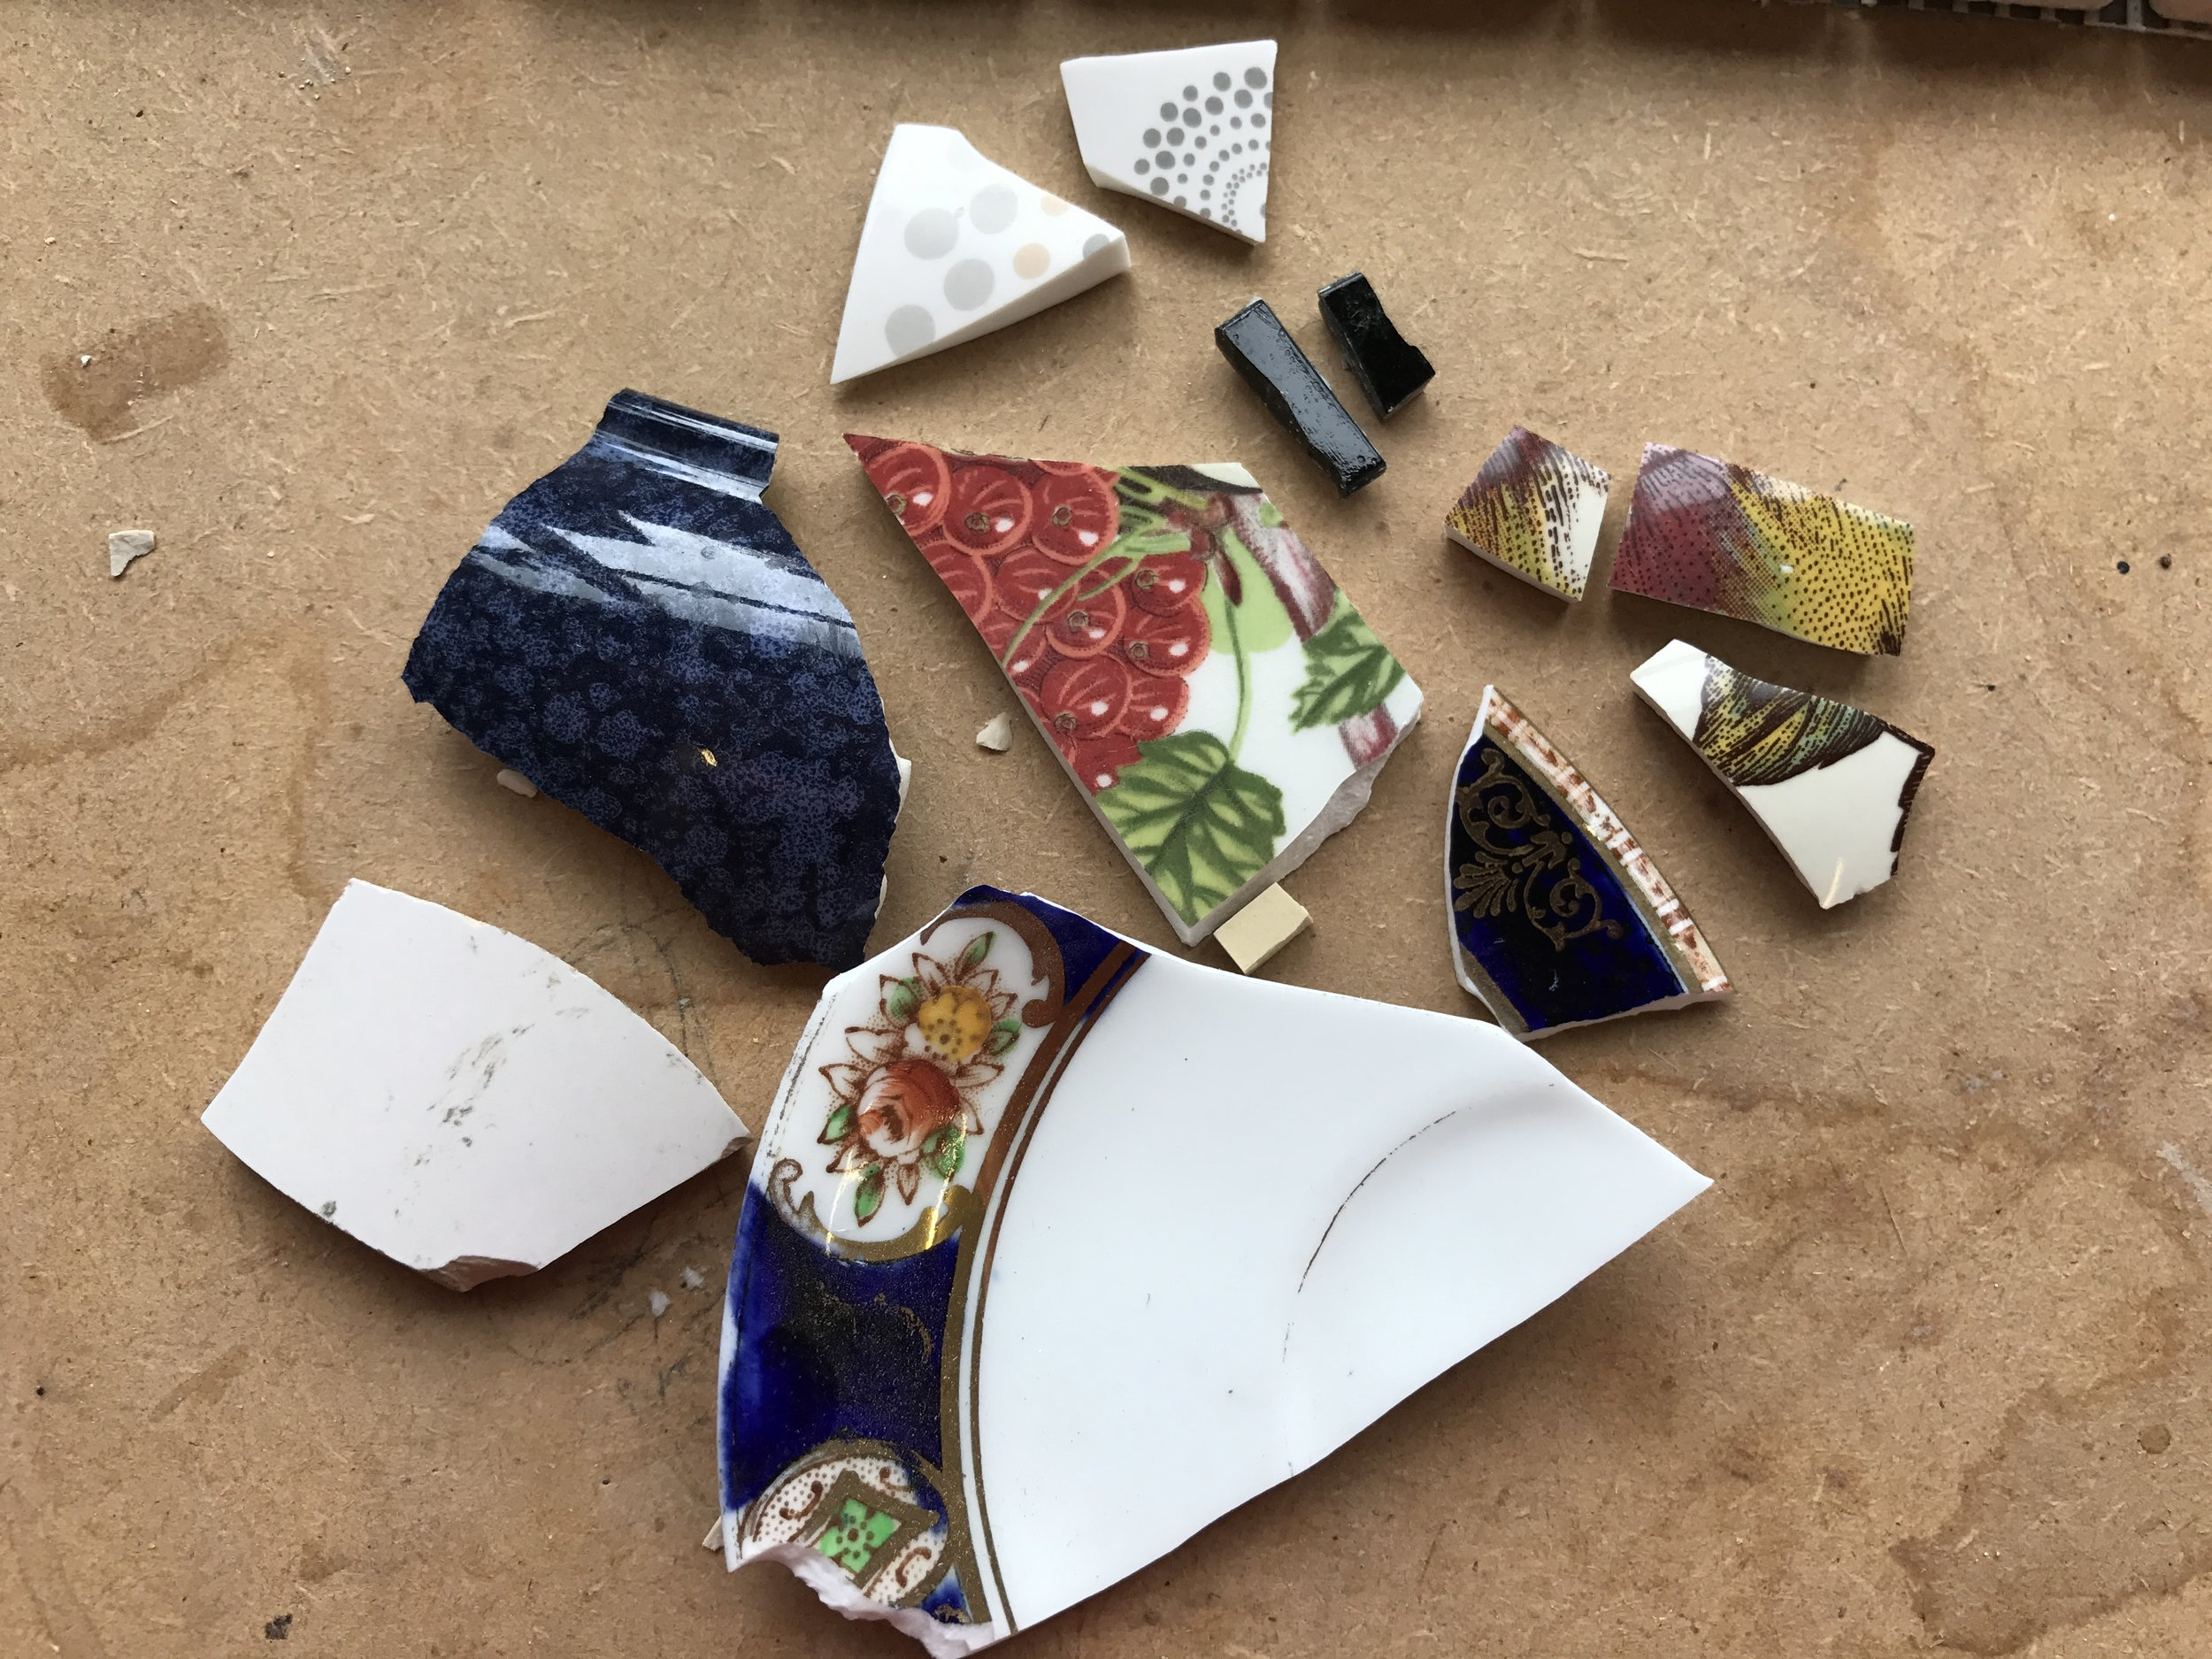 Broken china and porcelain ready to be recycled into a mosaic dragonfly.